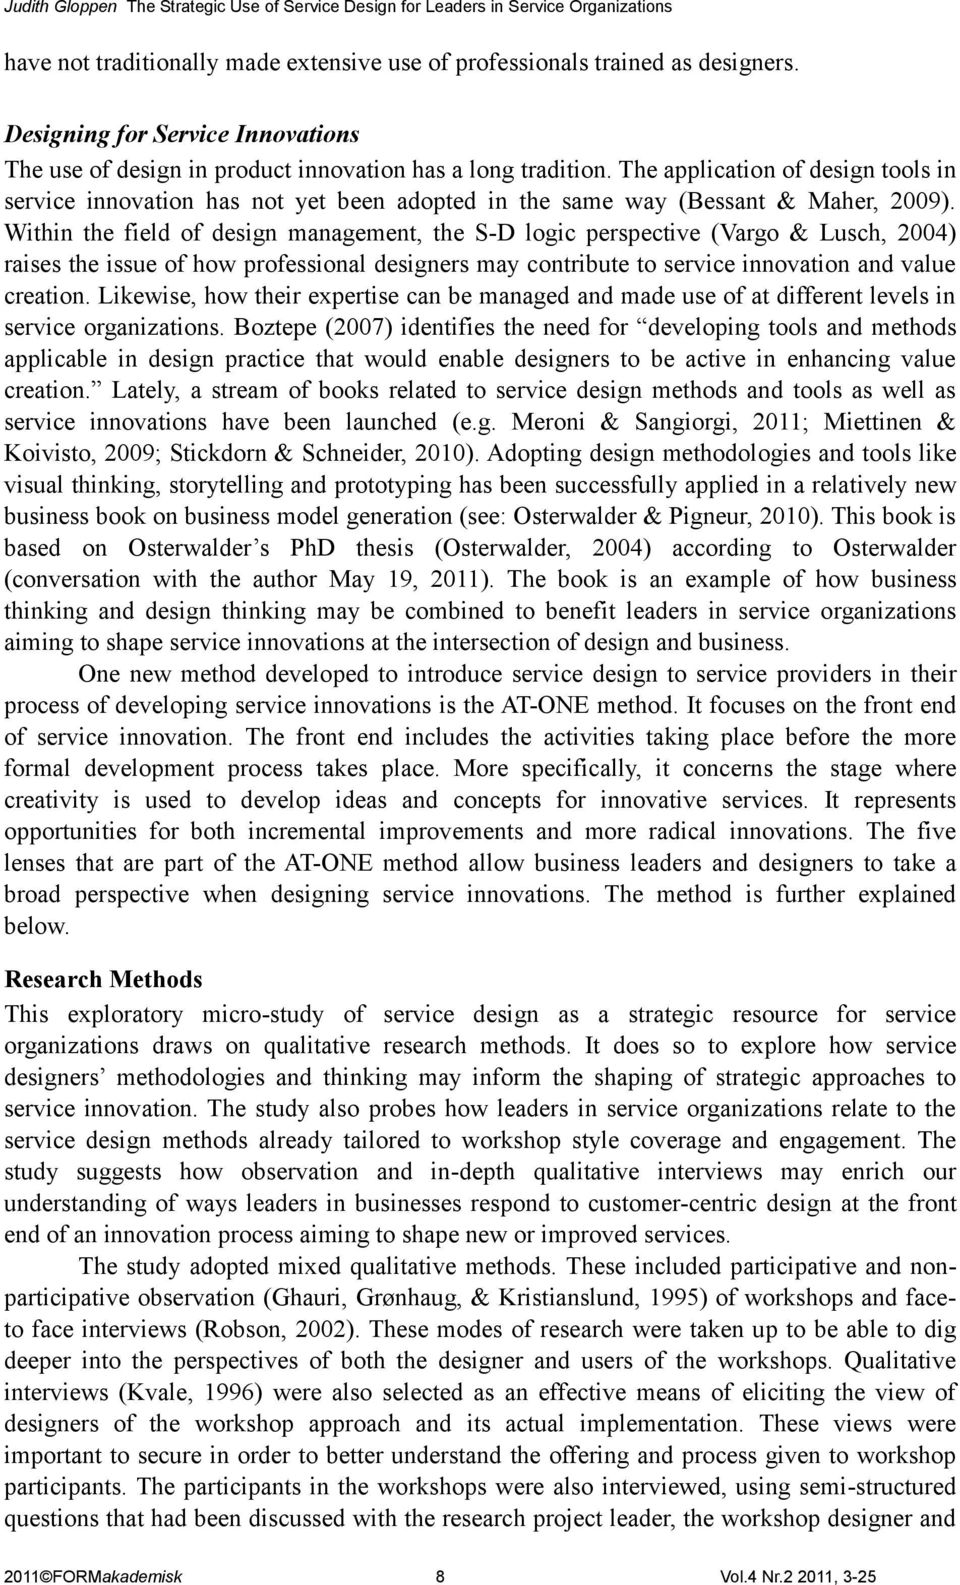 Within the field of design management, the S-D logic perspective (Vargo & Lusch, 2004) raises the issue of how professional designers may contribute to service innovation and value creation.